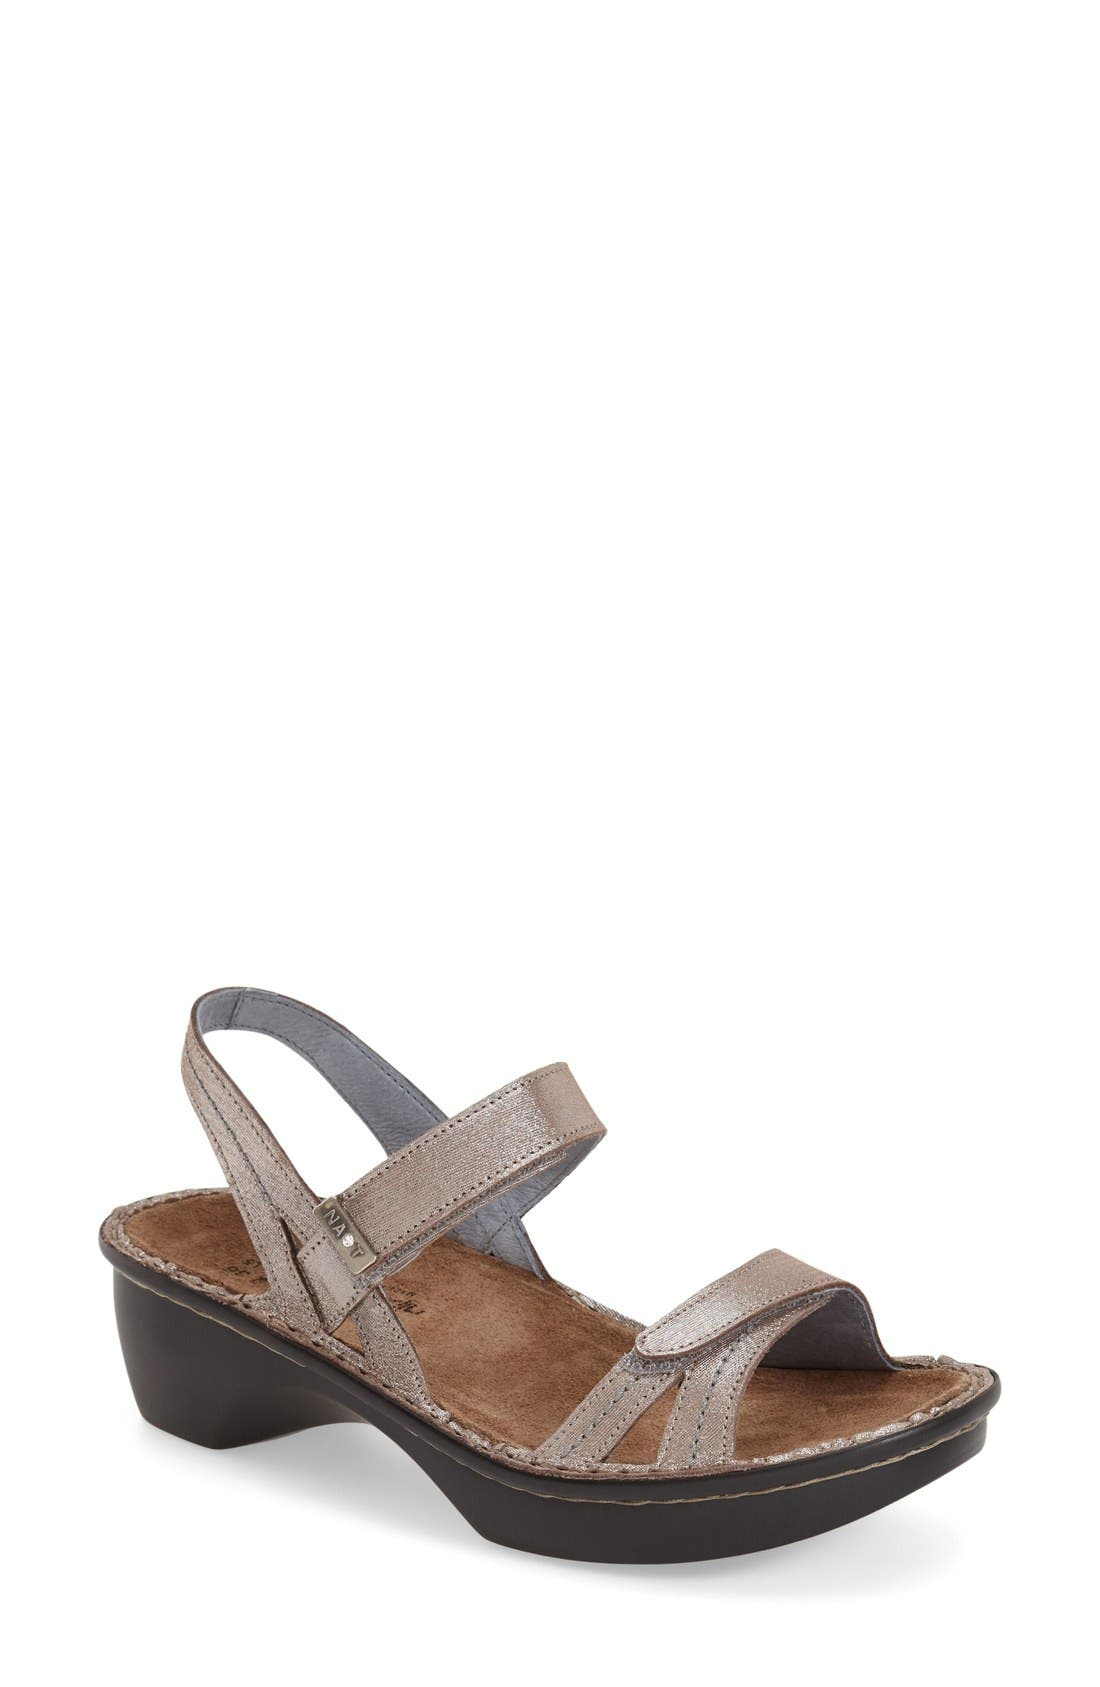 Main Image - Naot 'Brussels' Sandal (Women)